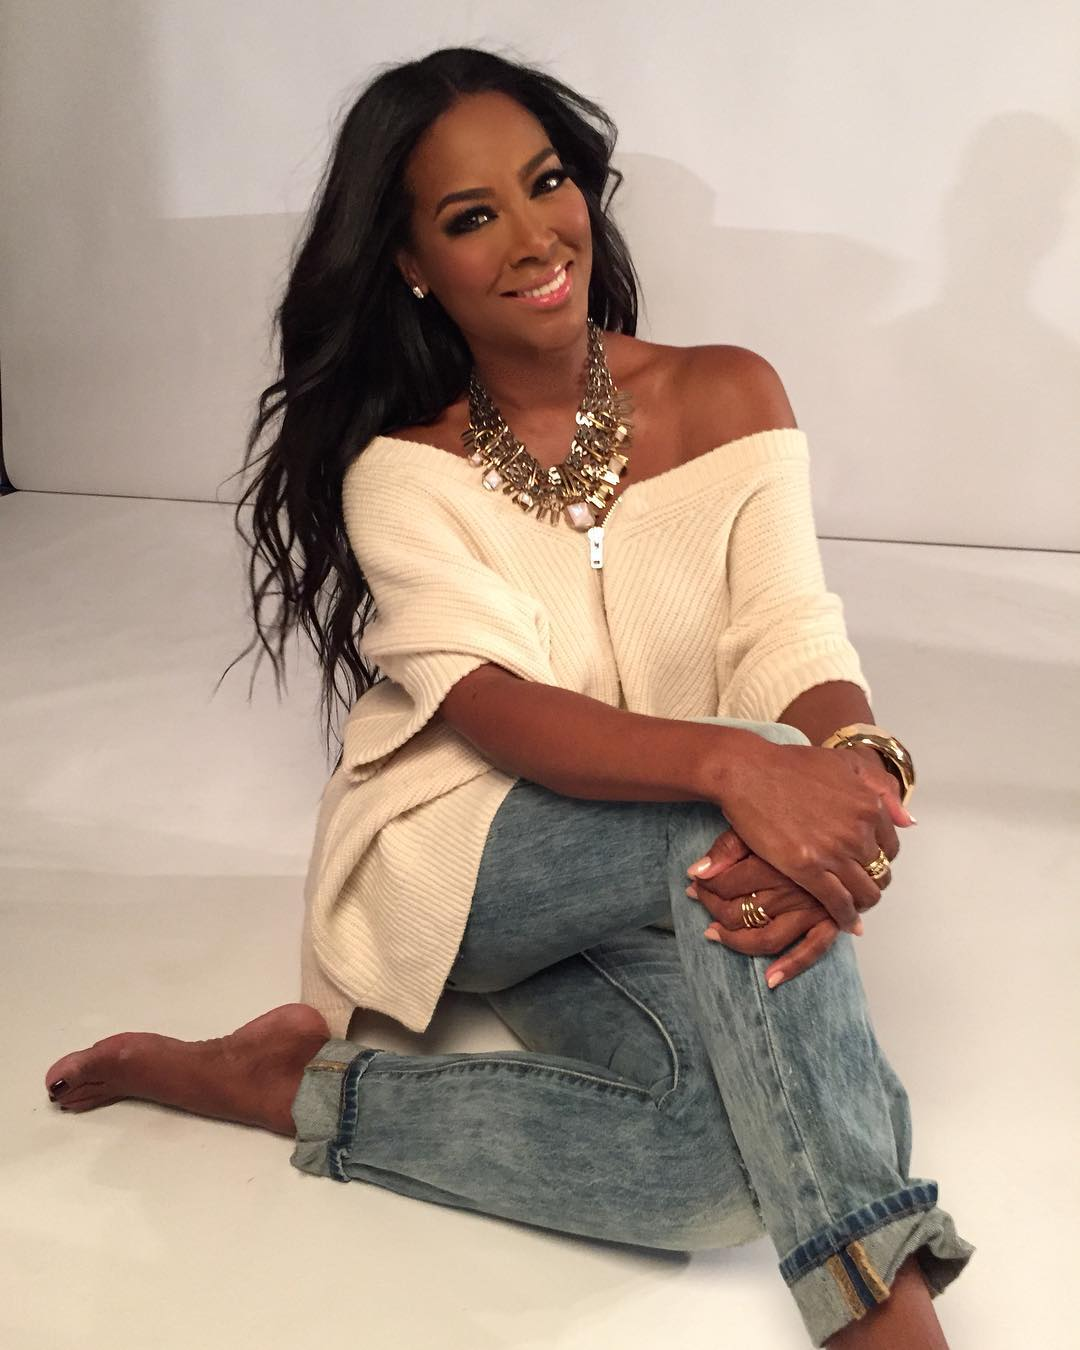 Kenya Moore Hot in Jeans